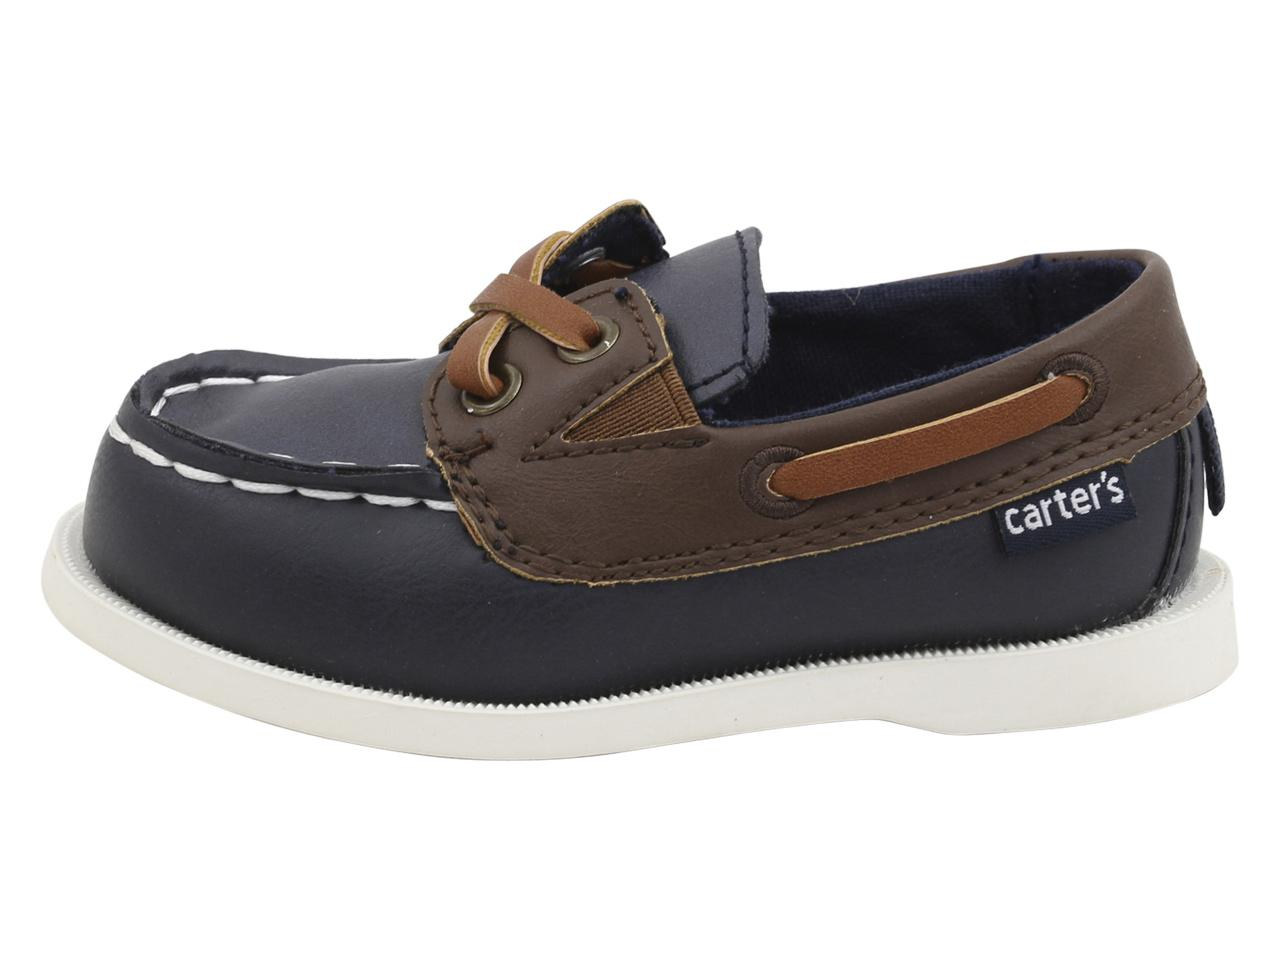 a1b217291 Carter s Toddler Little Boy s Bauk Loafers Boat Shoes by Carter s